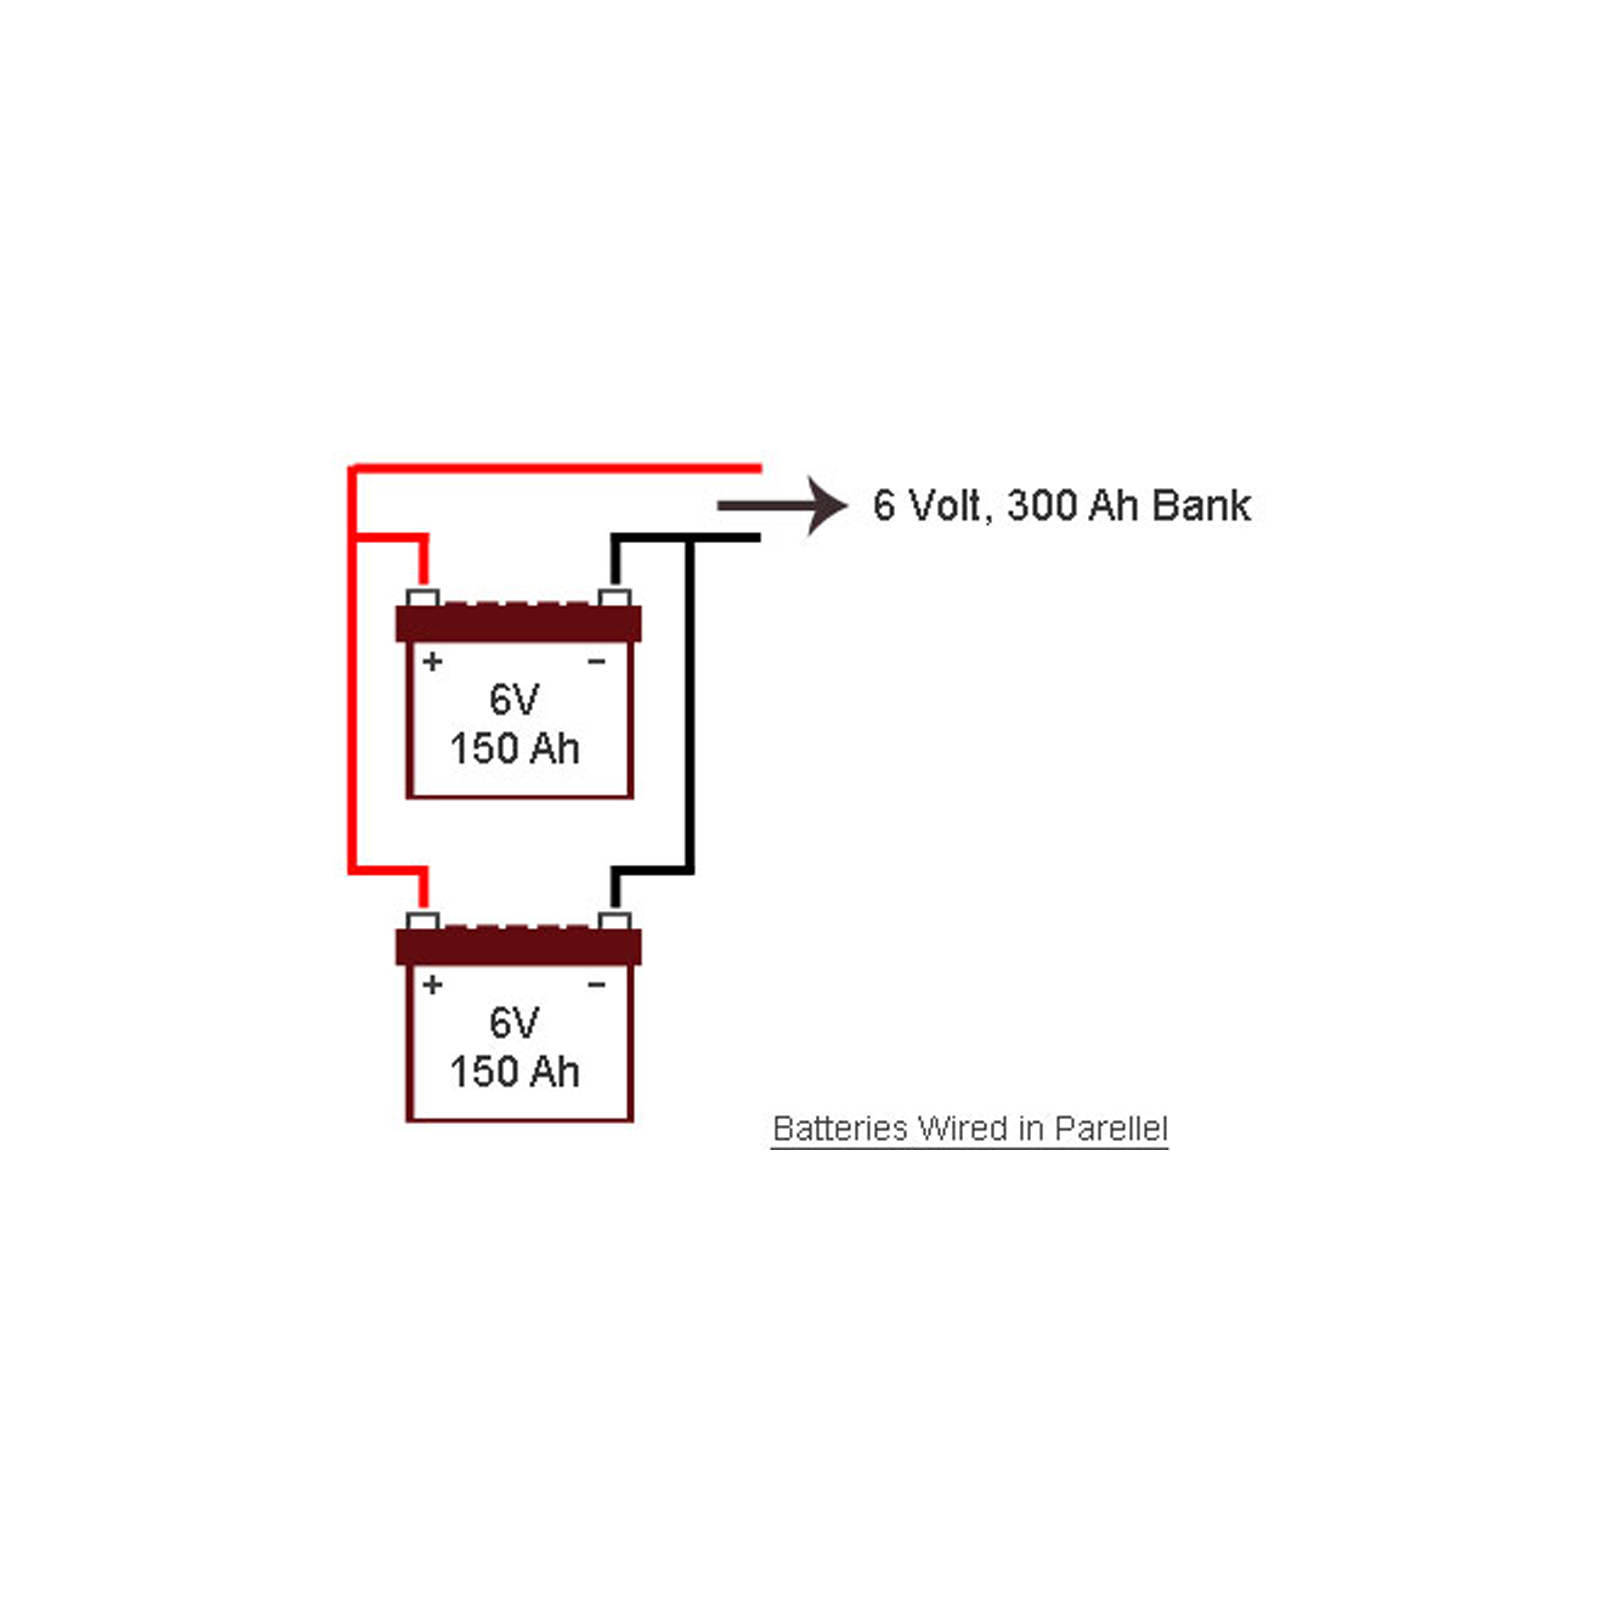 Series Parallel Battery Wiring Guide And Troubleshooting Of Rv Diagram Your Bank In Difference Between